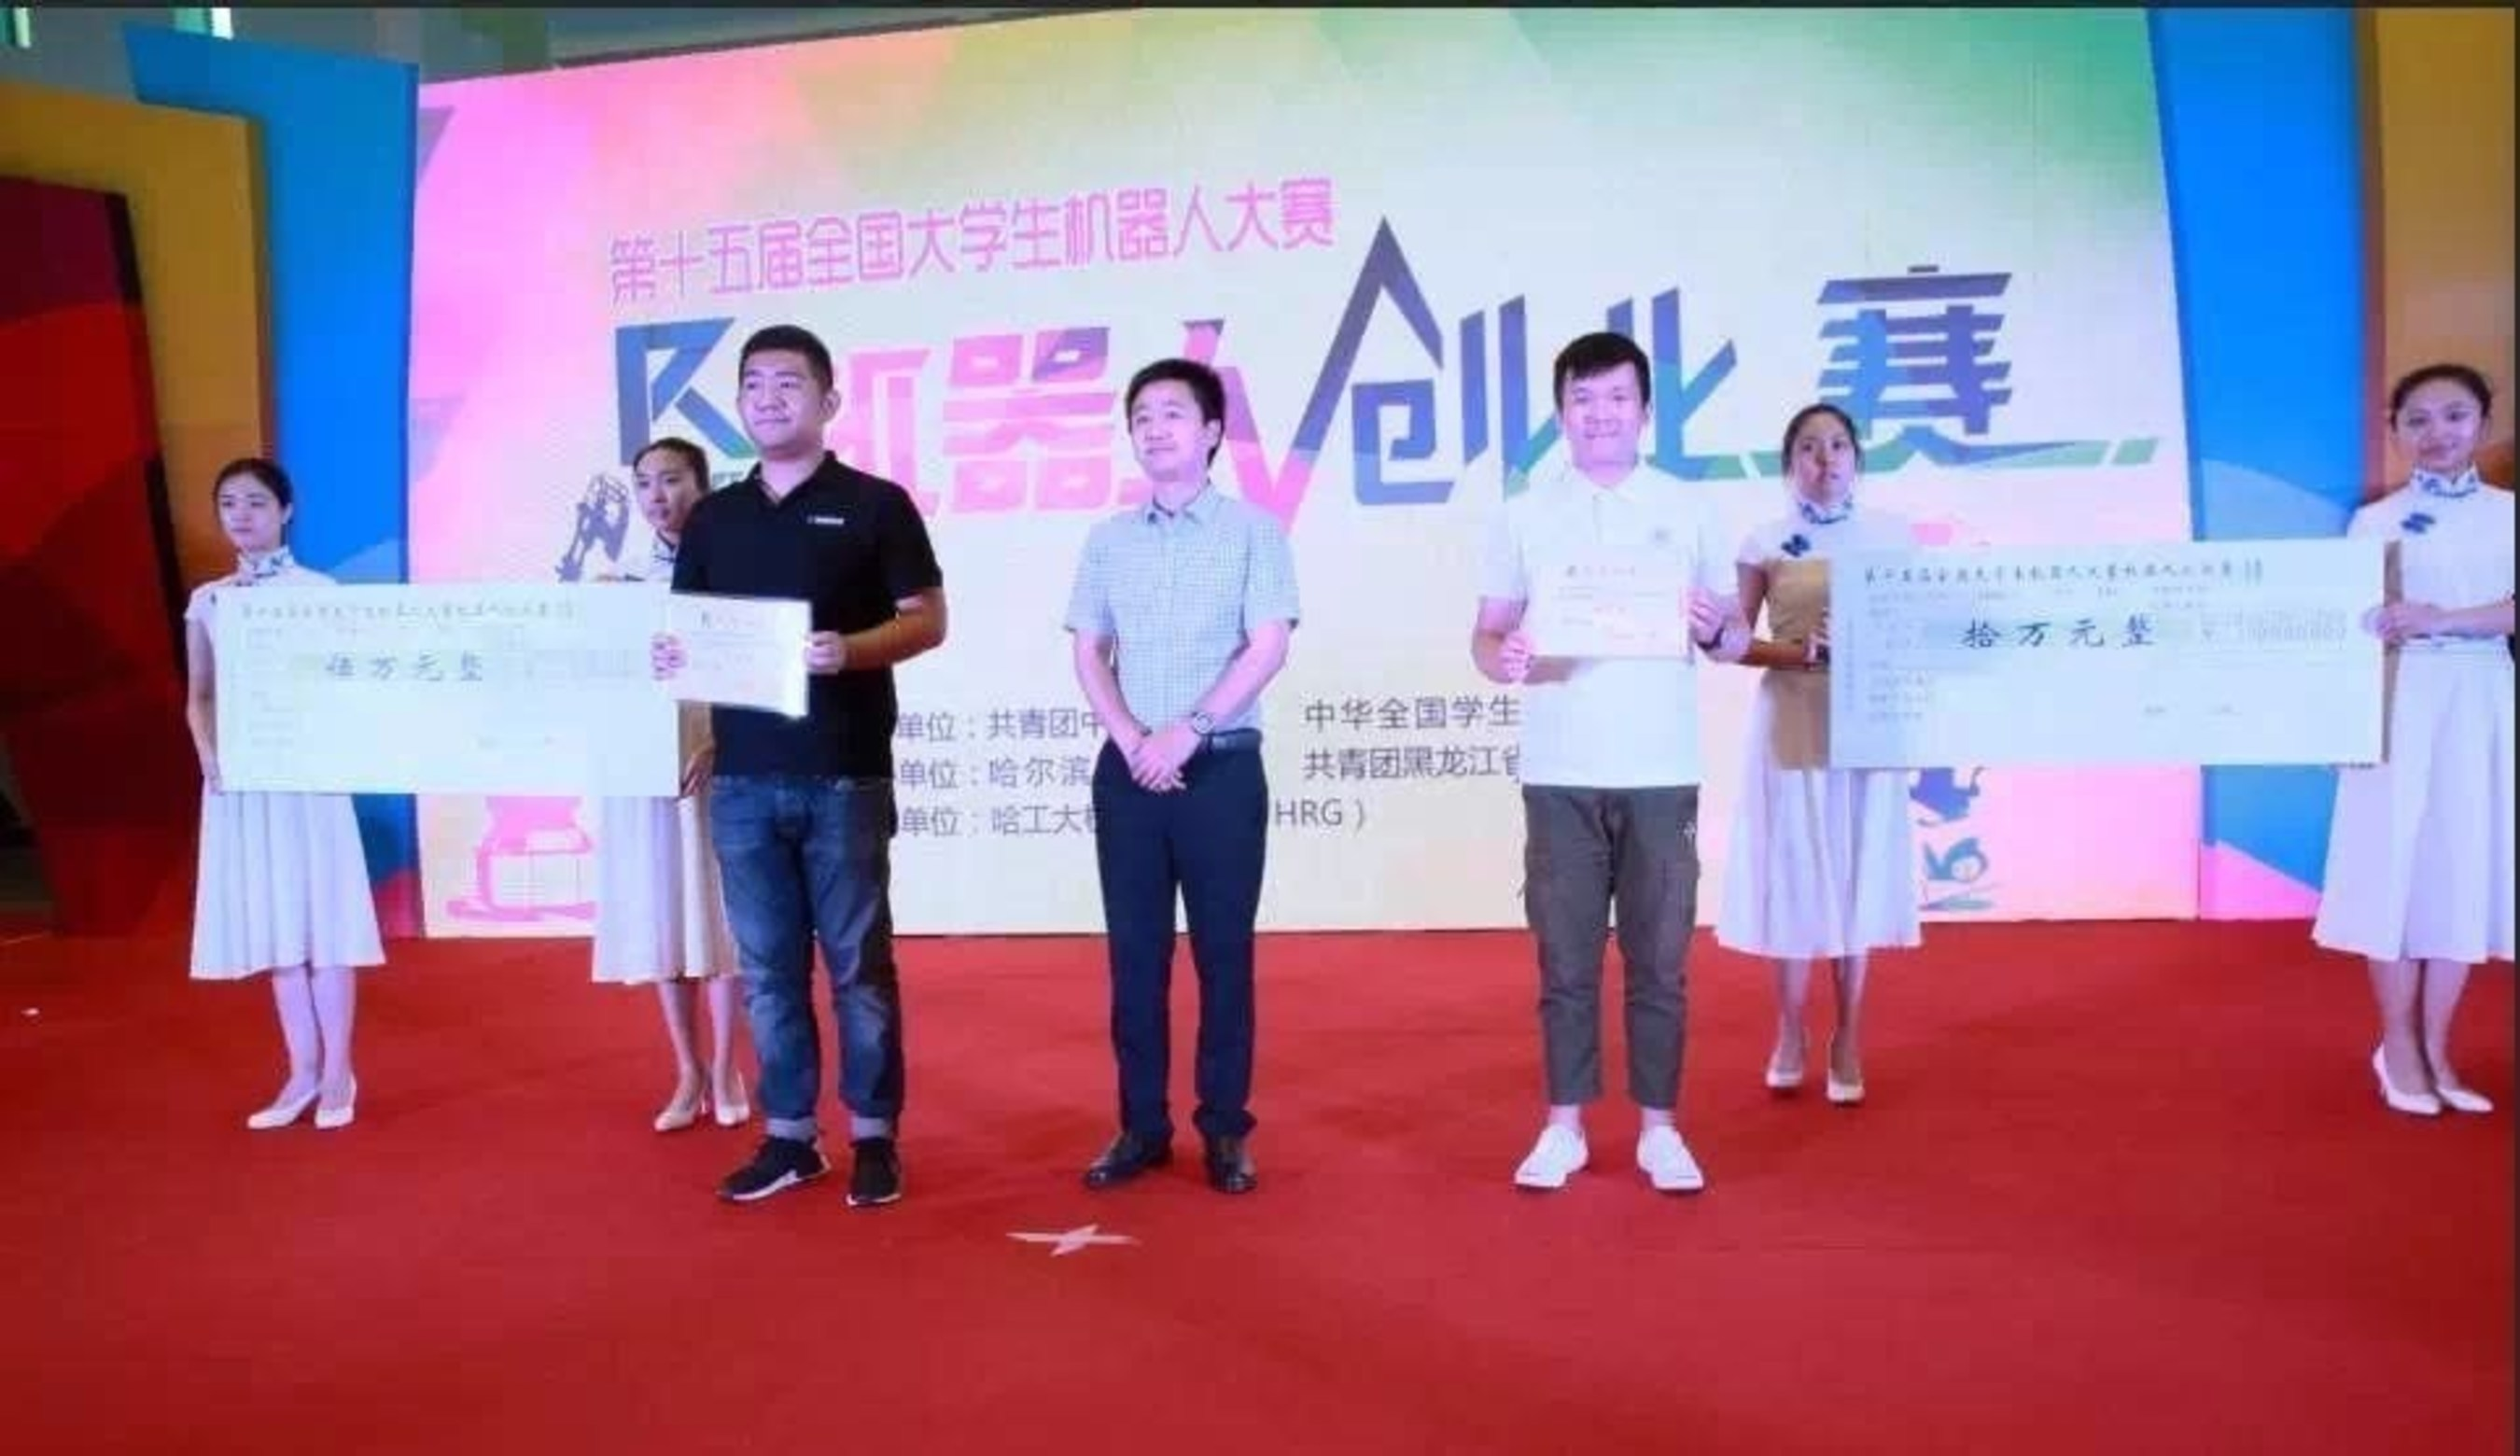 Winners awarded at the closing ceremony